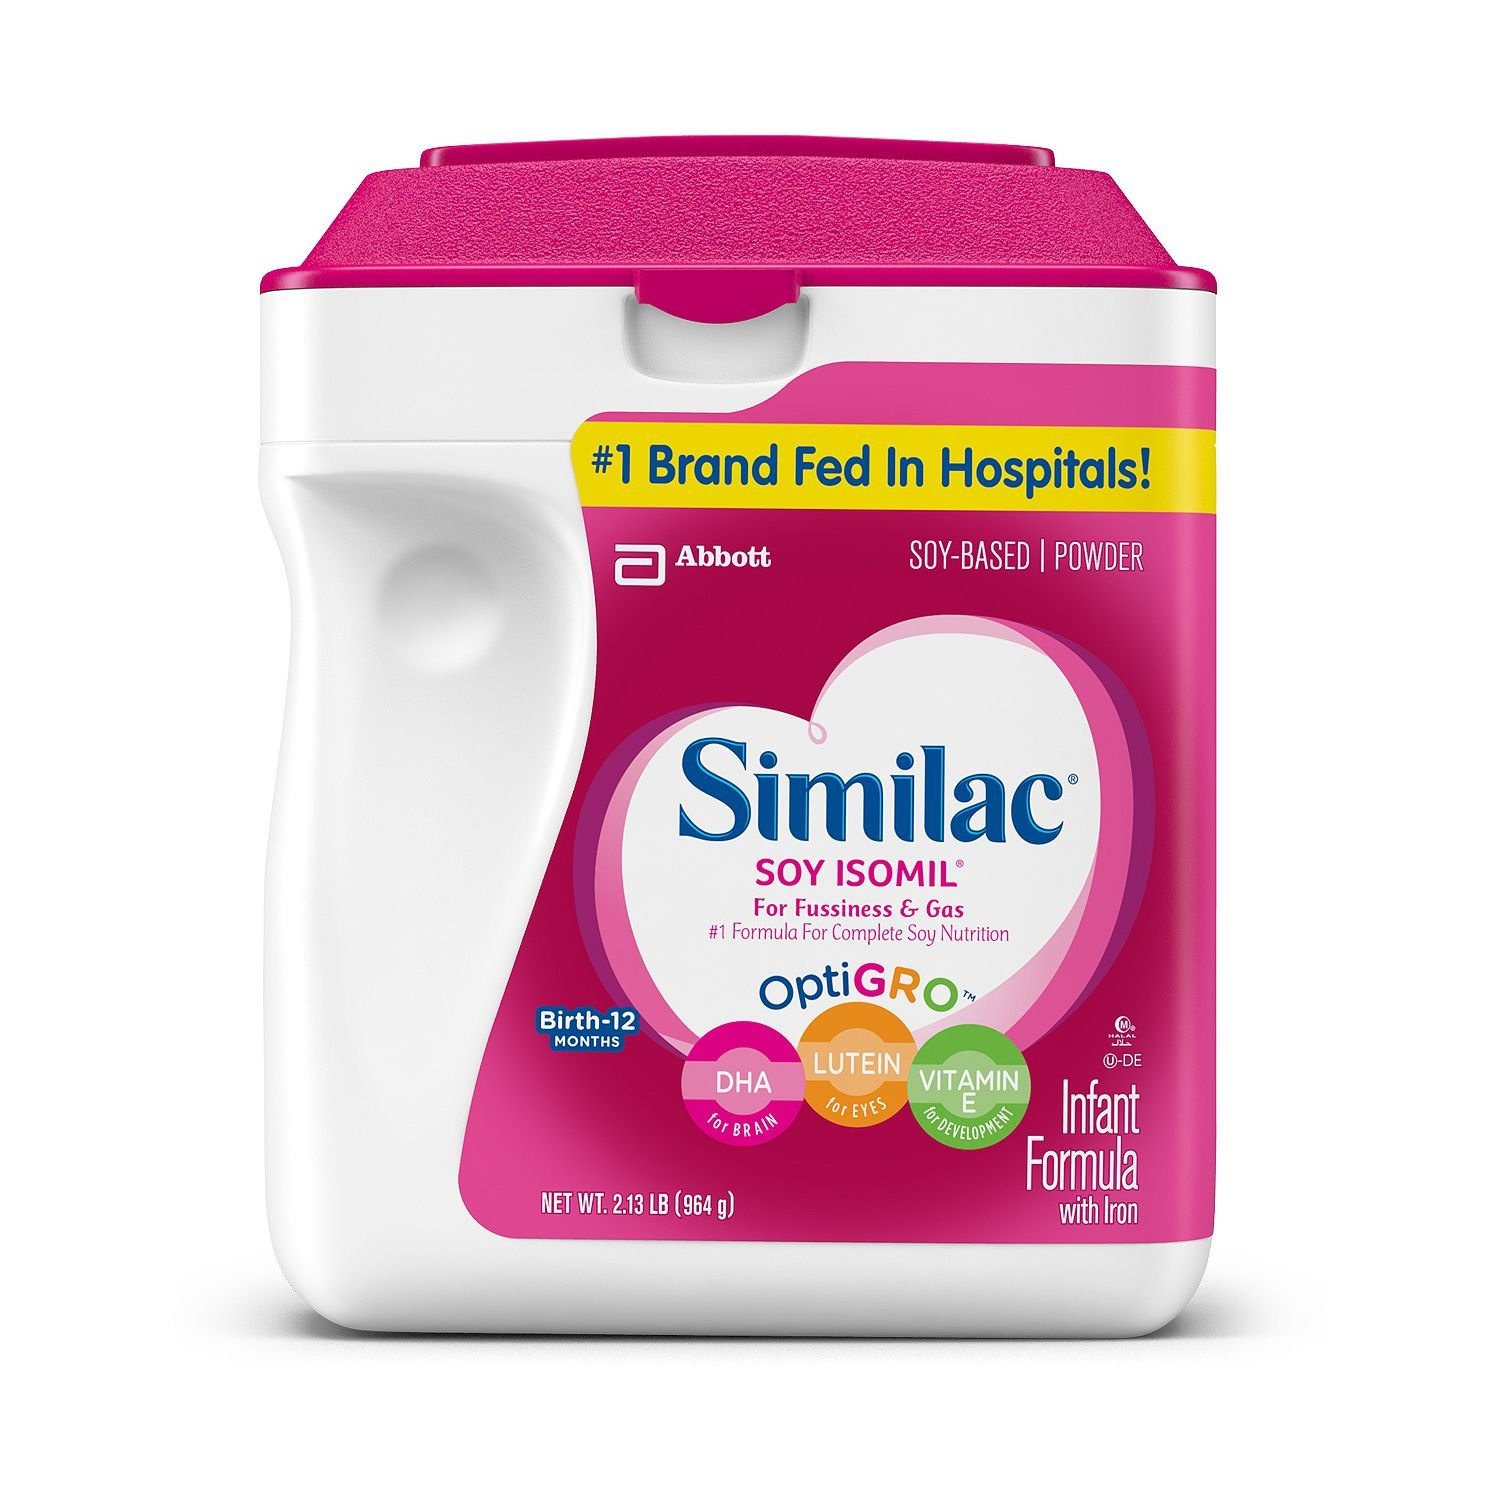 Similac - Soy Isomil Infant Formula, 34 oz. - 2 pk